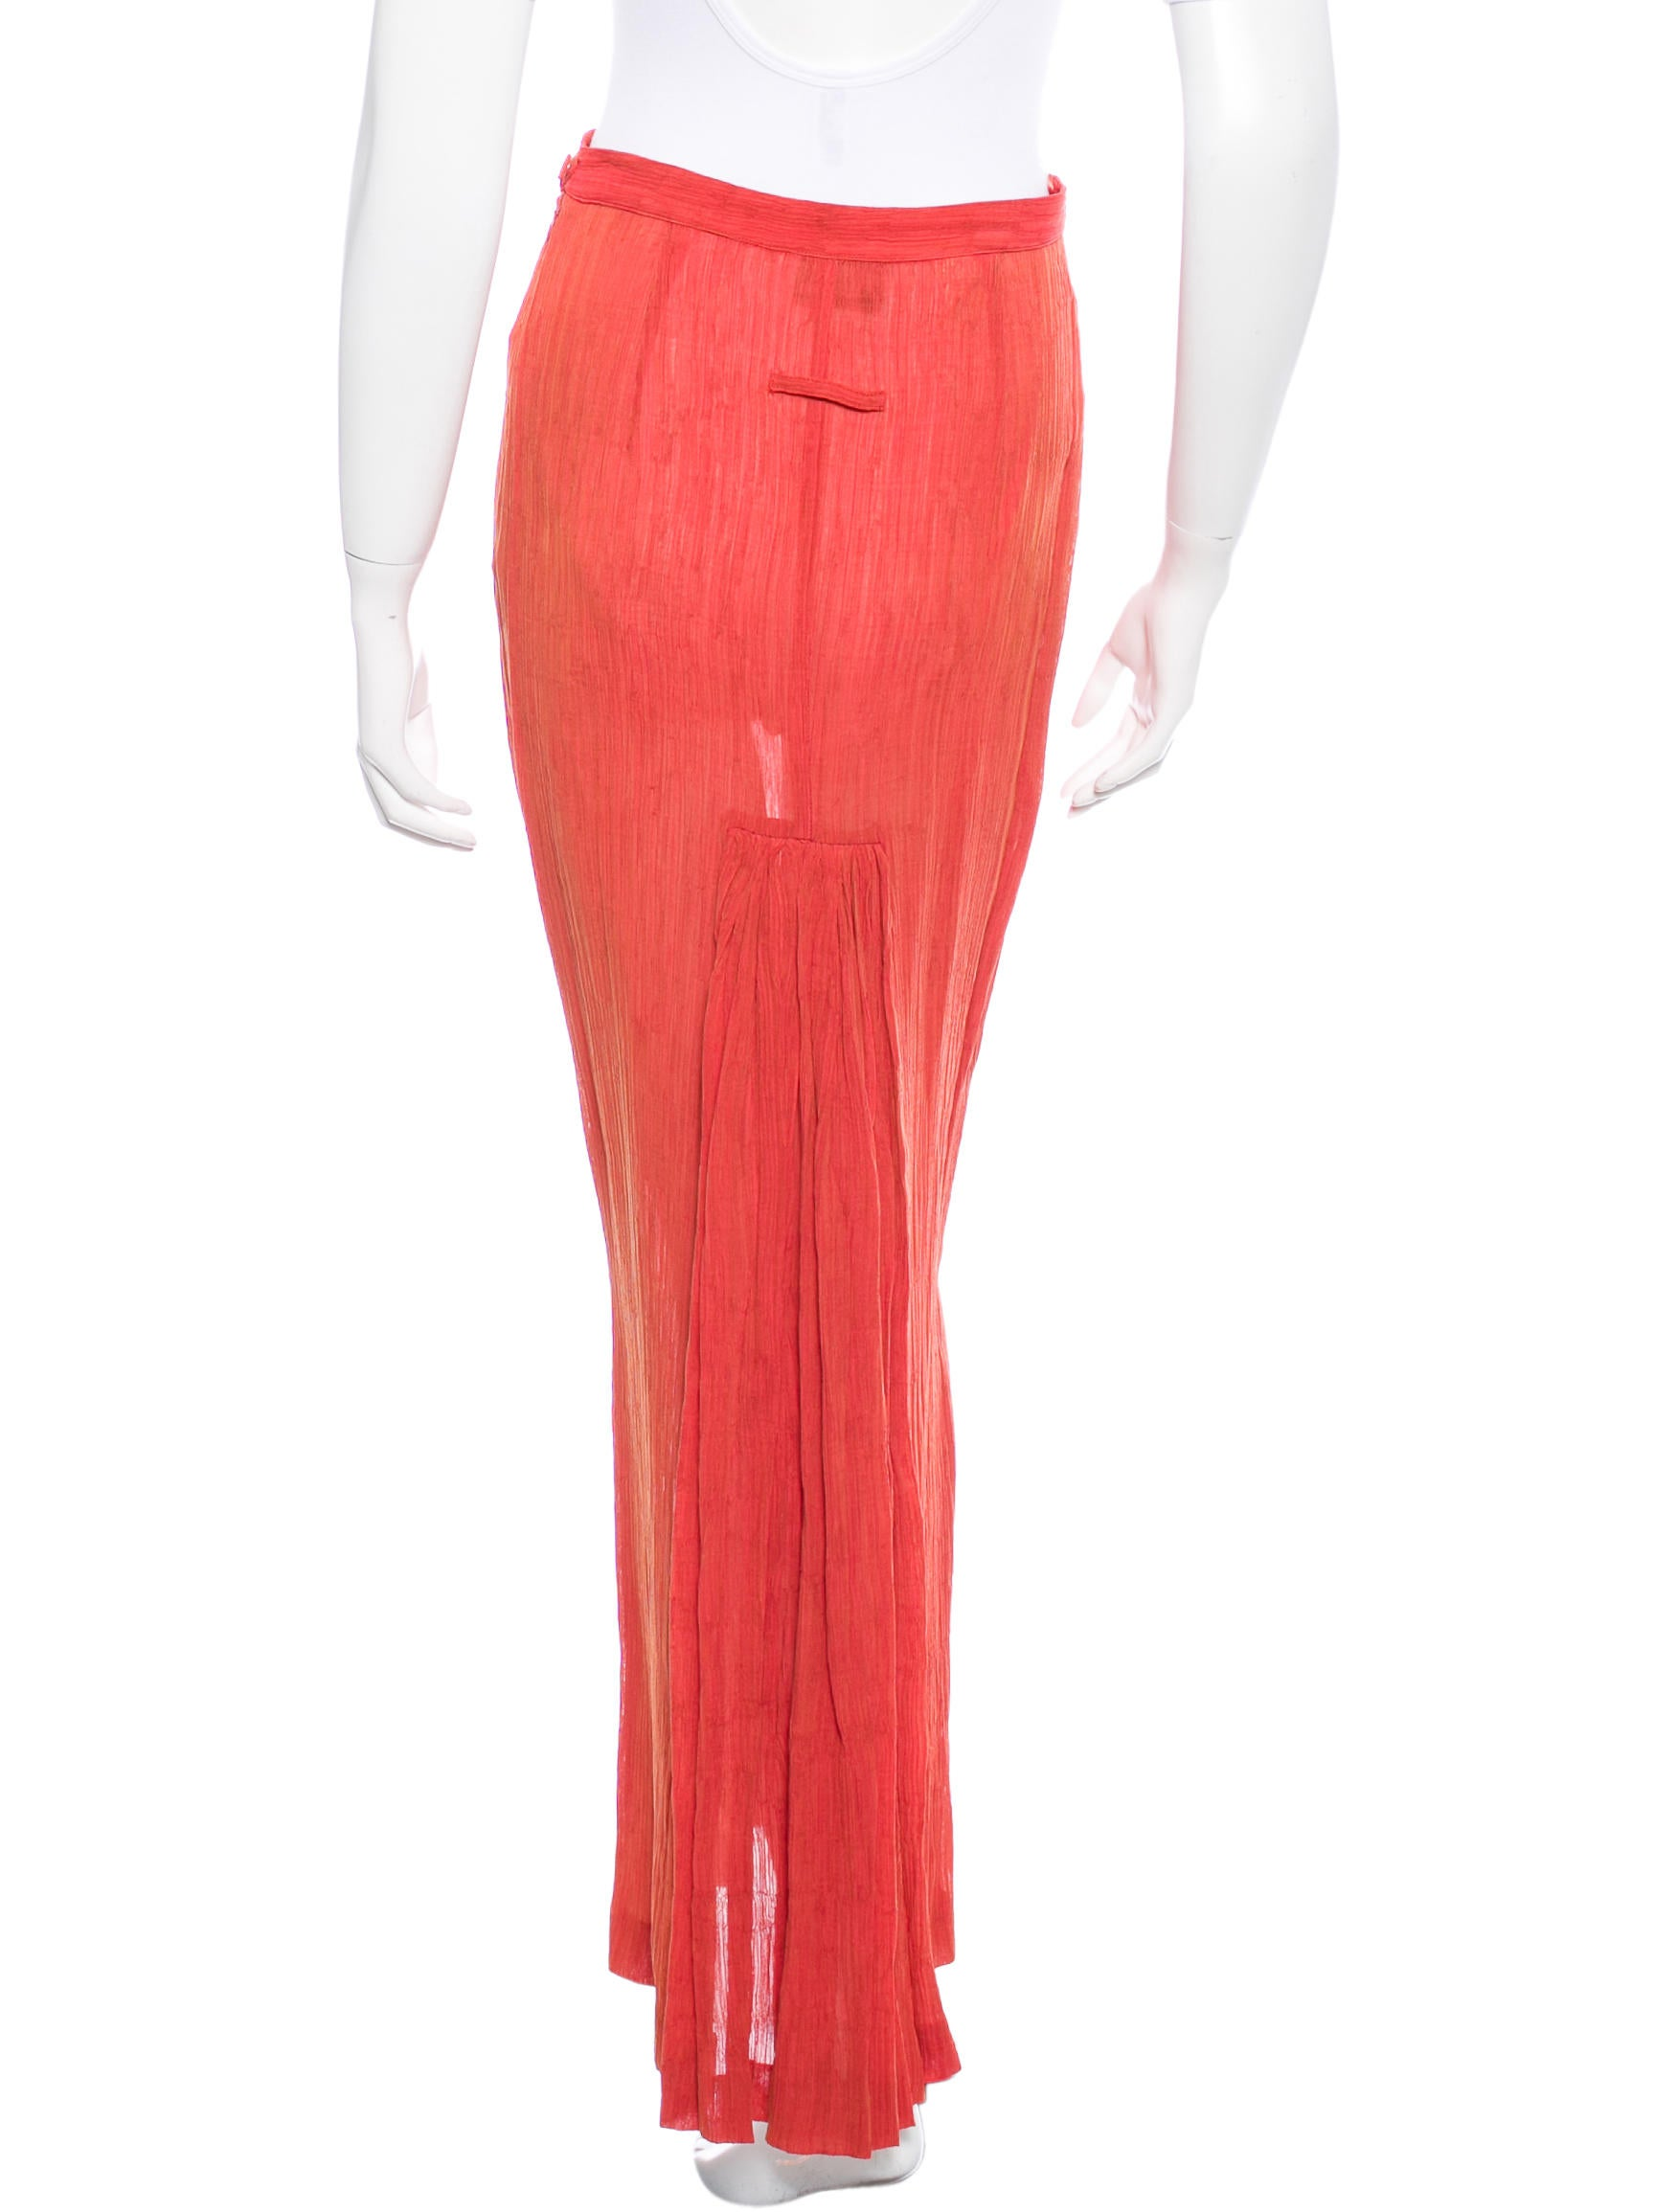 Jean paul gaultier pleat maxi skirt clothing jea24714 for Jean paul gaultier clothing